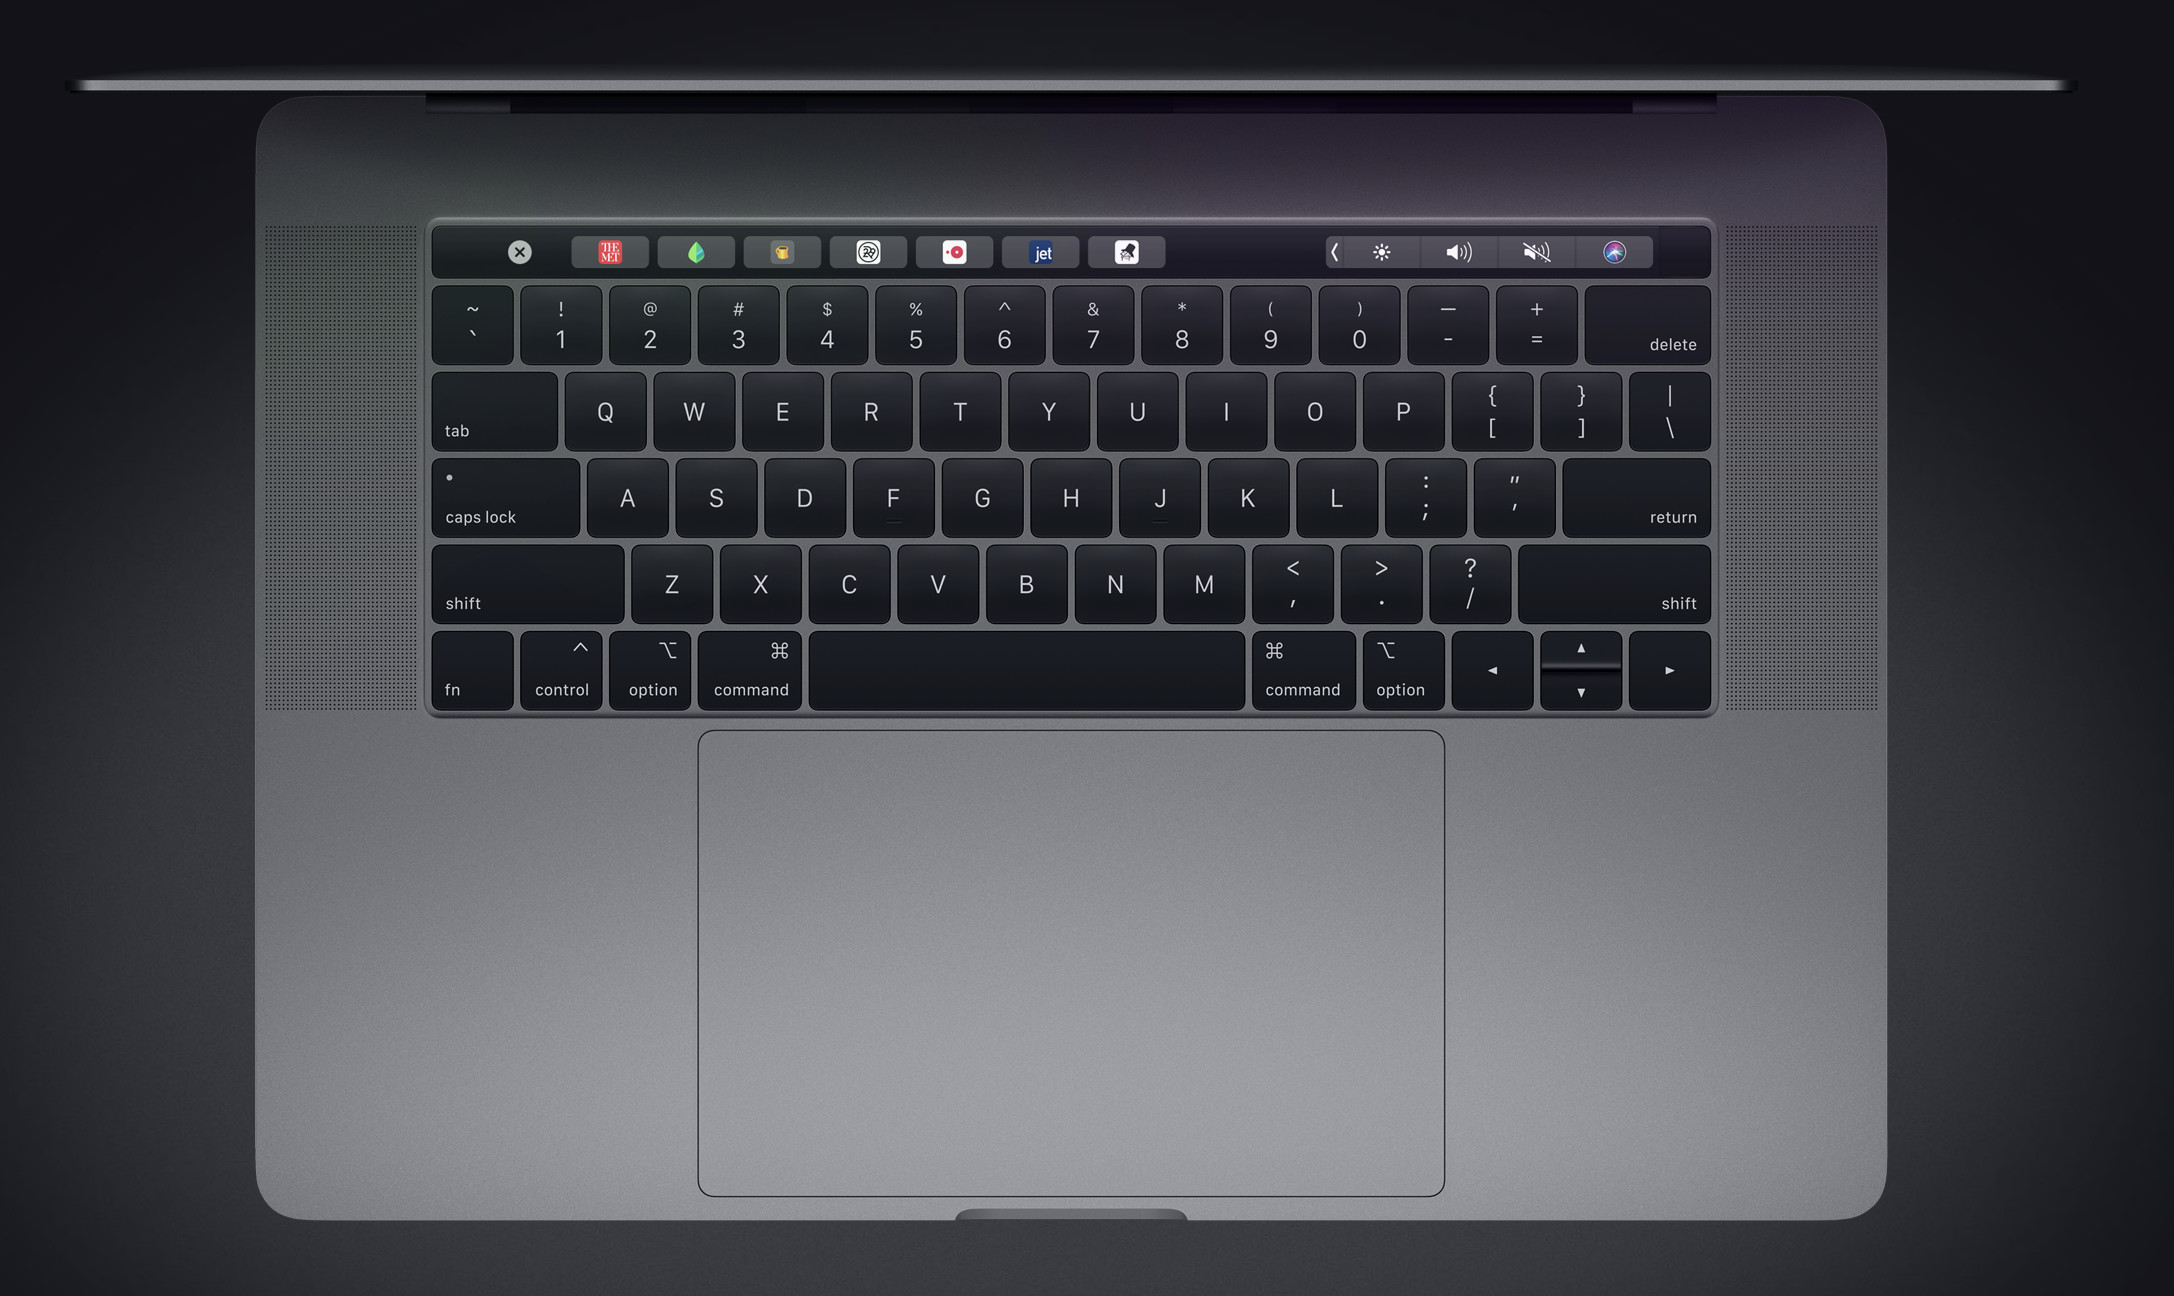 MacBook Pro 2018 Initial Findings: Keyboard Design Cover-Up?